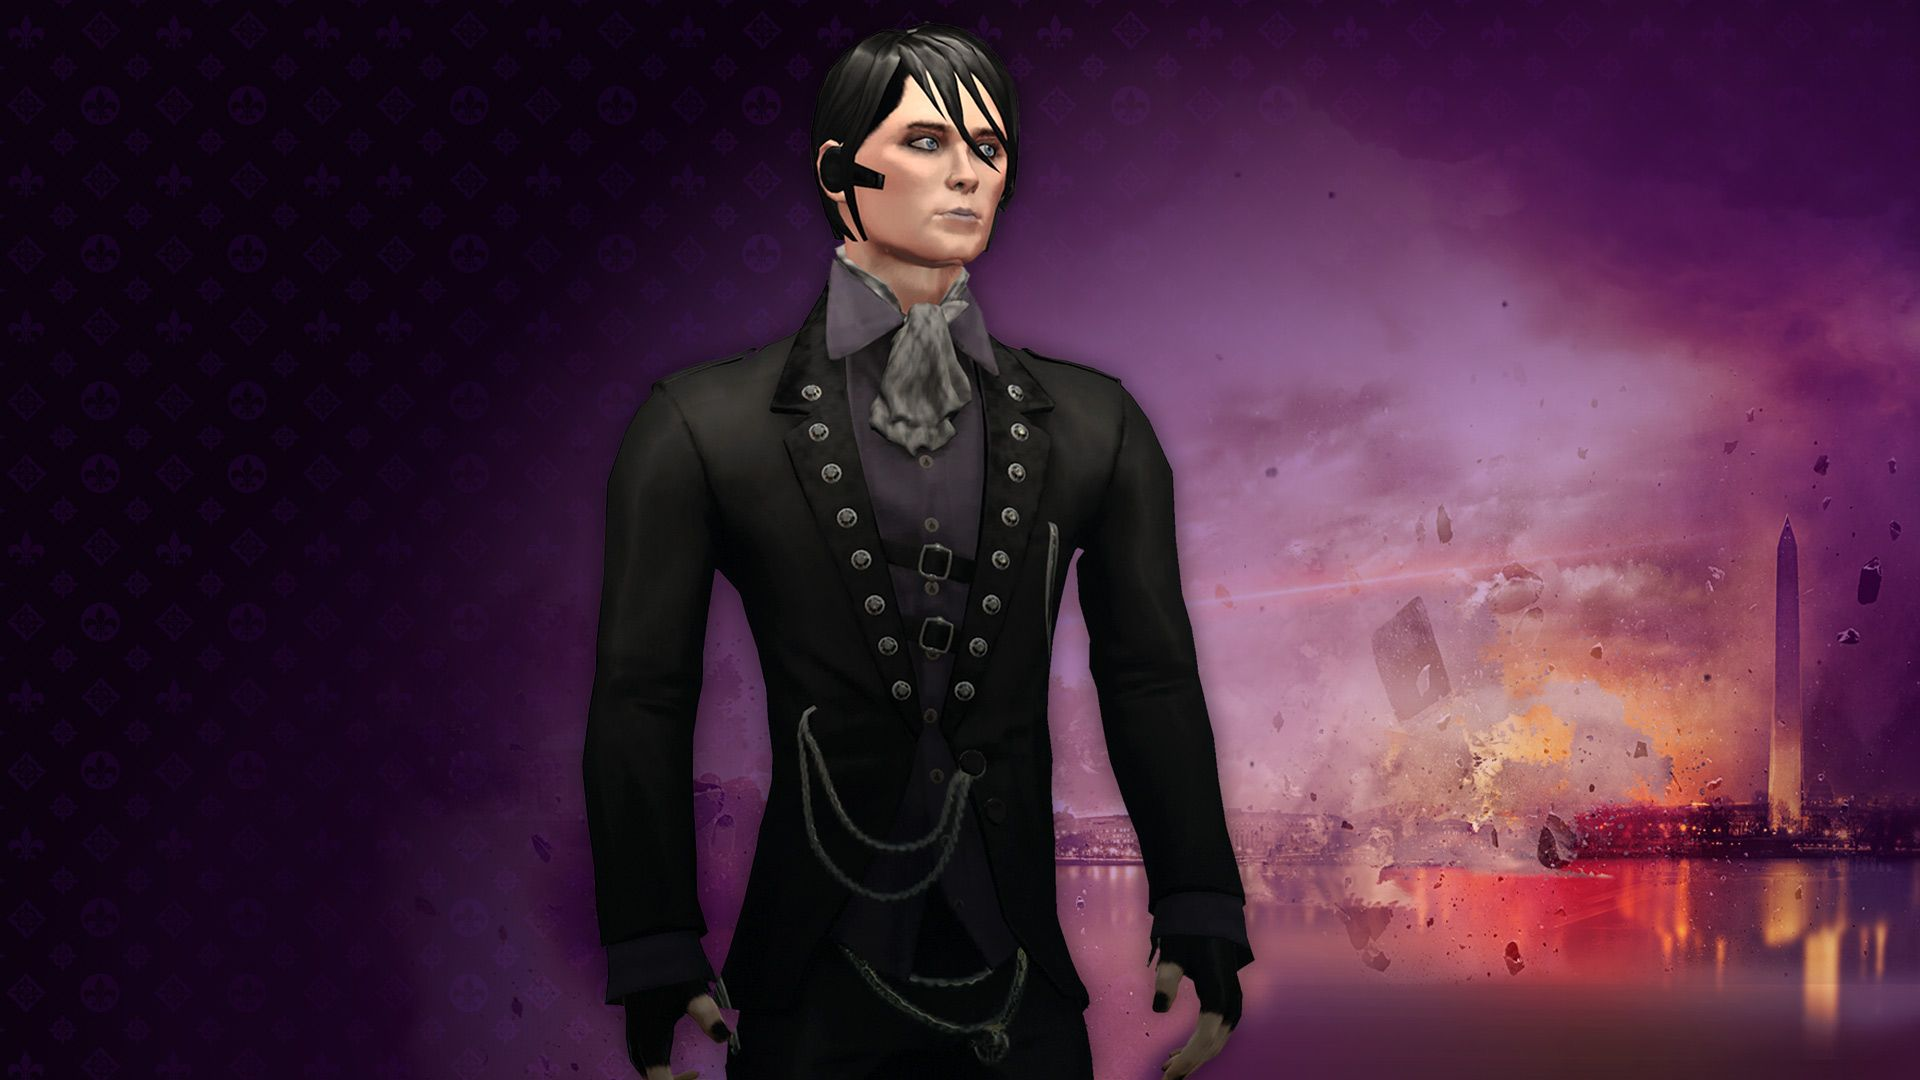 Saints Row Iv Matt Miller Saints Row Iv Saints Row Saints Row 4